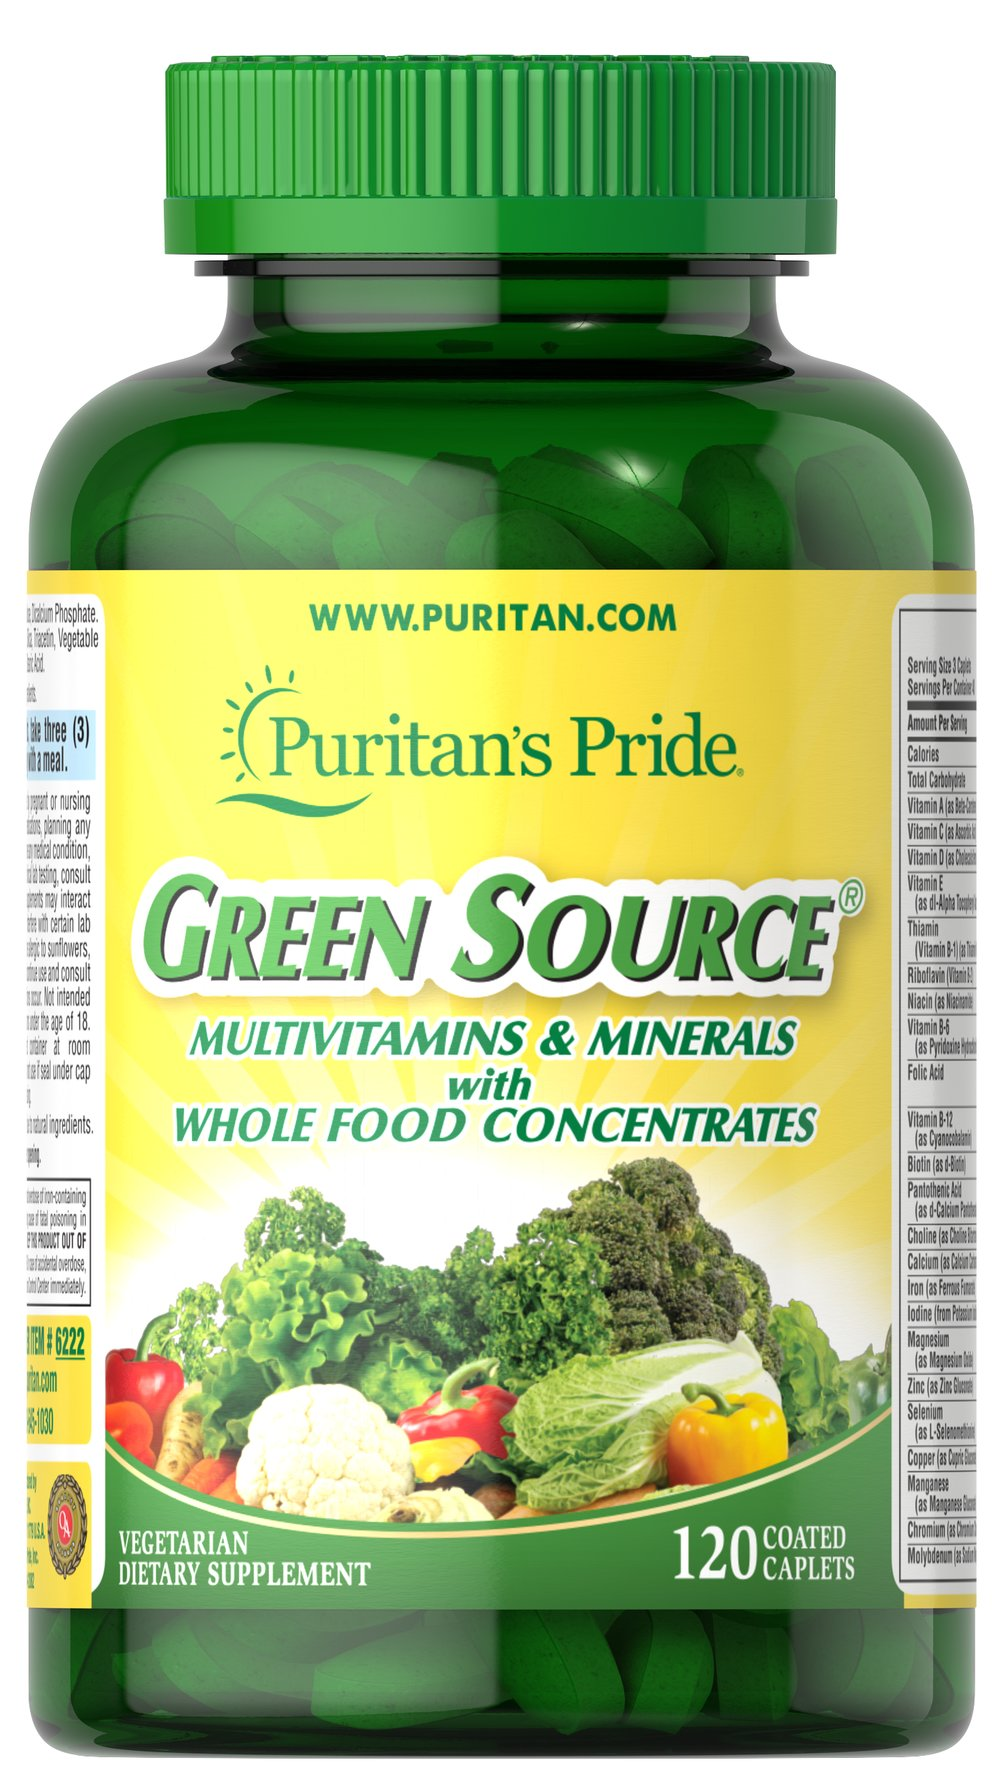 Green Source® Multivitamin & Minerals <p>This concentrated formula contains potent food source nutrients to provide essential vitamins, minerals, enzymes and amino acids. It also provides all the naturally occurring active constituents of whole foods.</p> 120 Caplets  $29.69